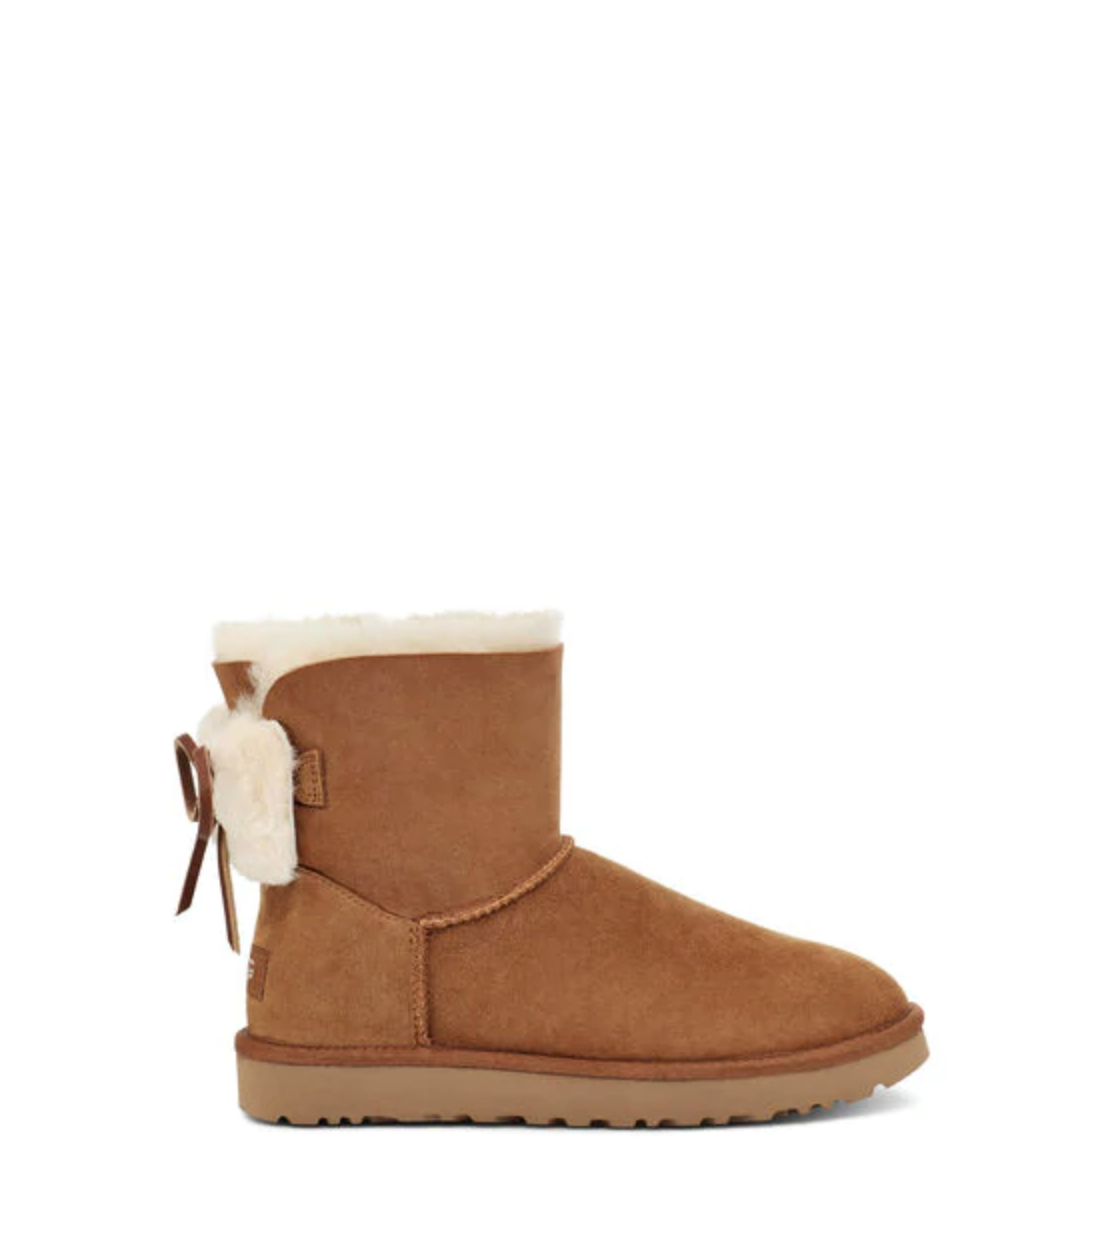 Ugg On Sale For Cyber Monday